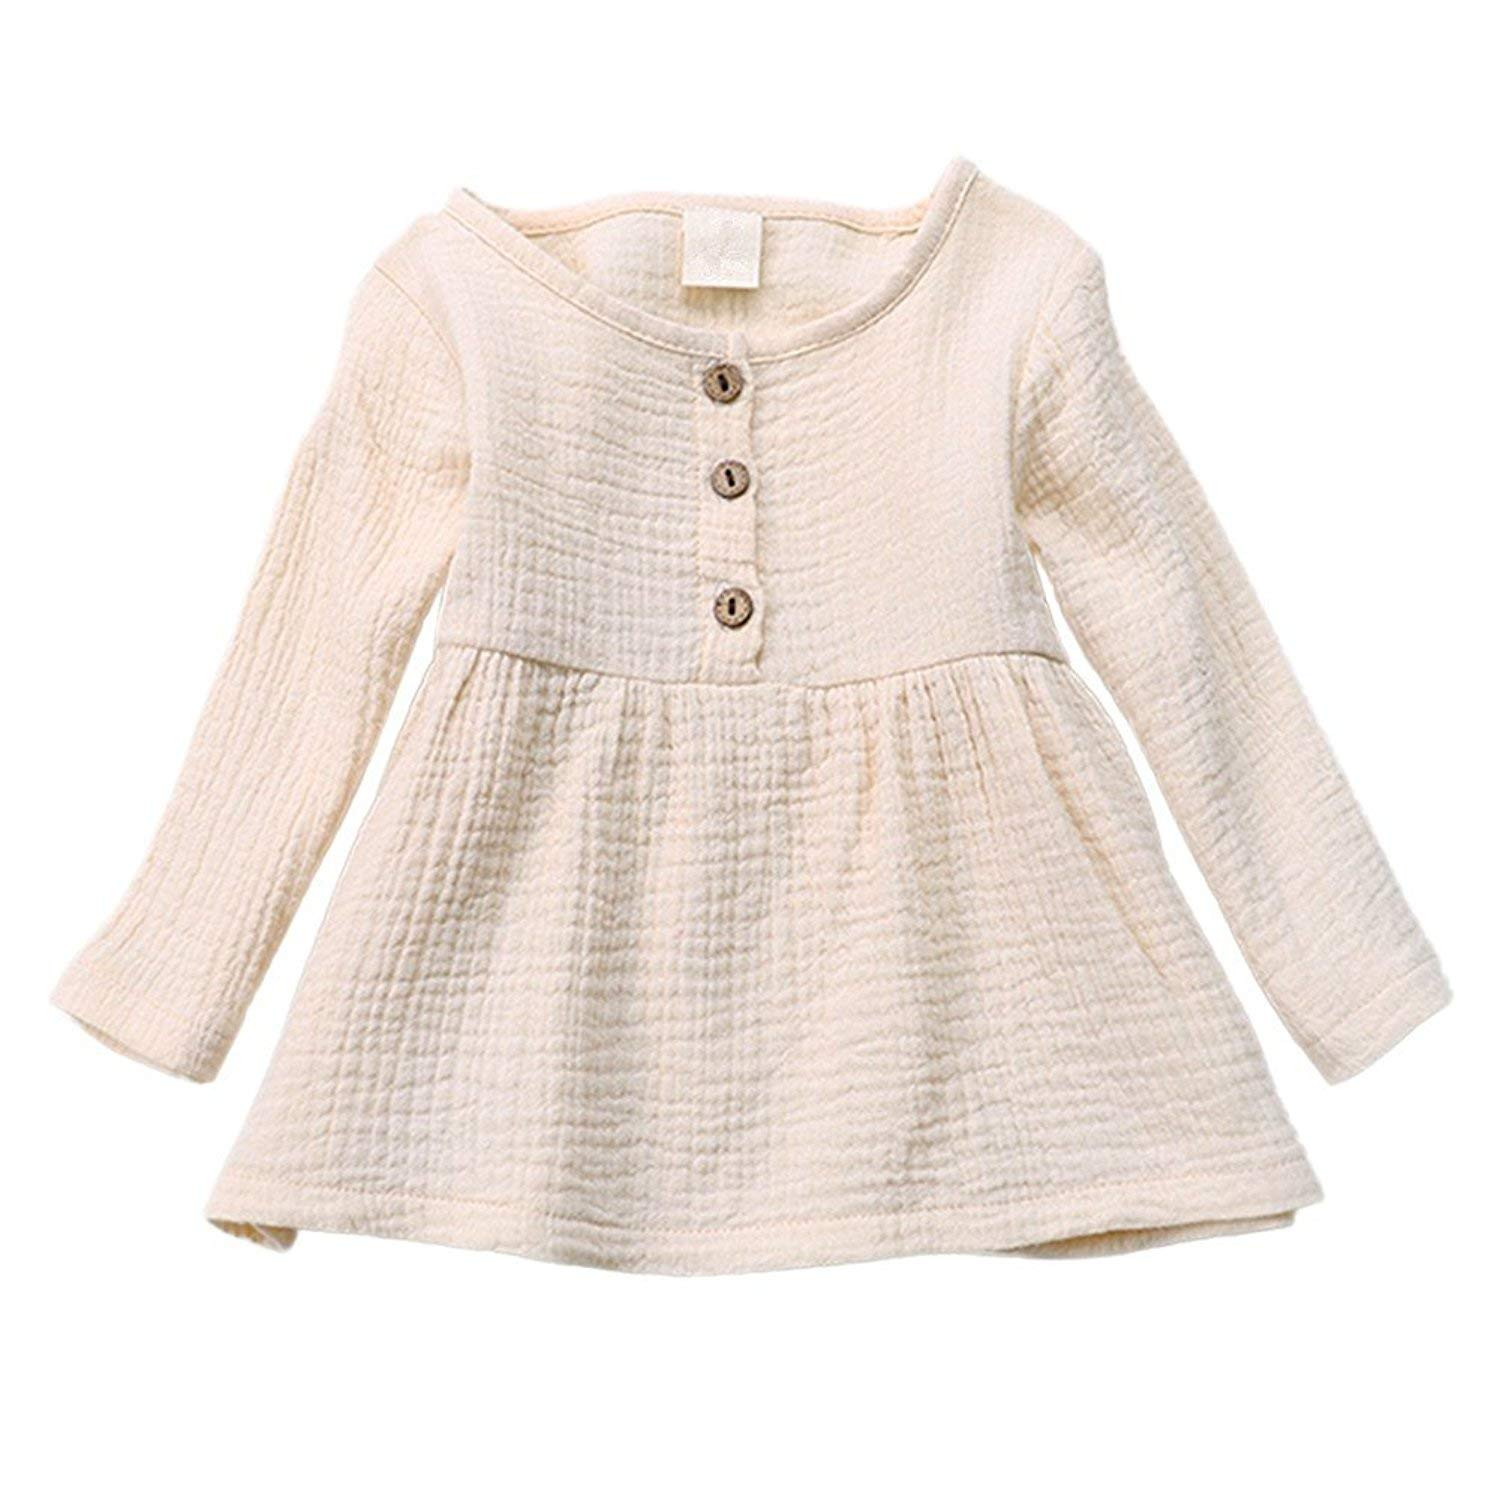 GObabyGO Baby Girls Round Neck Long Sleeve Cotton Linen Tops Dresses